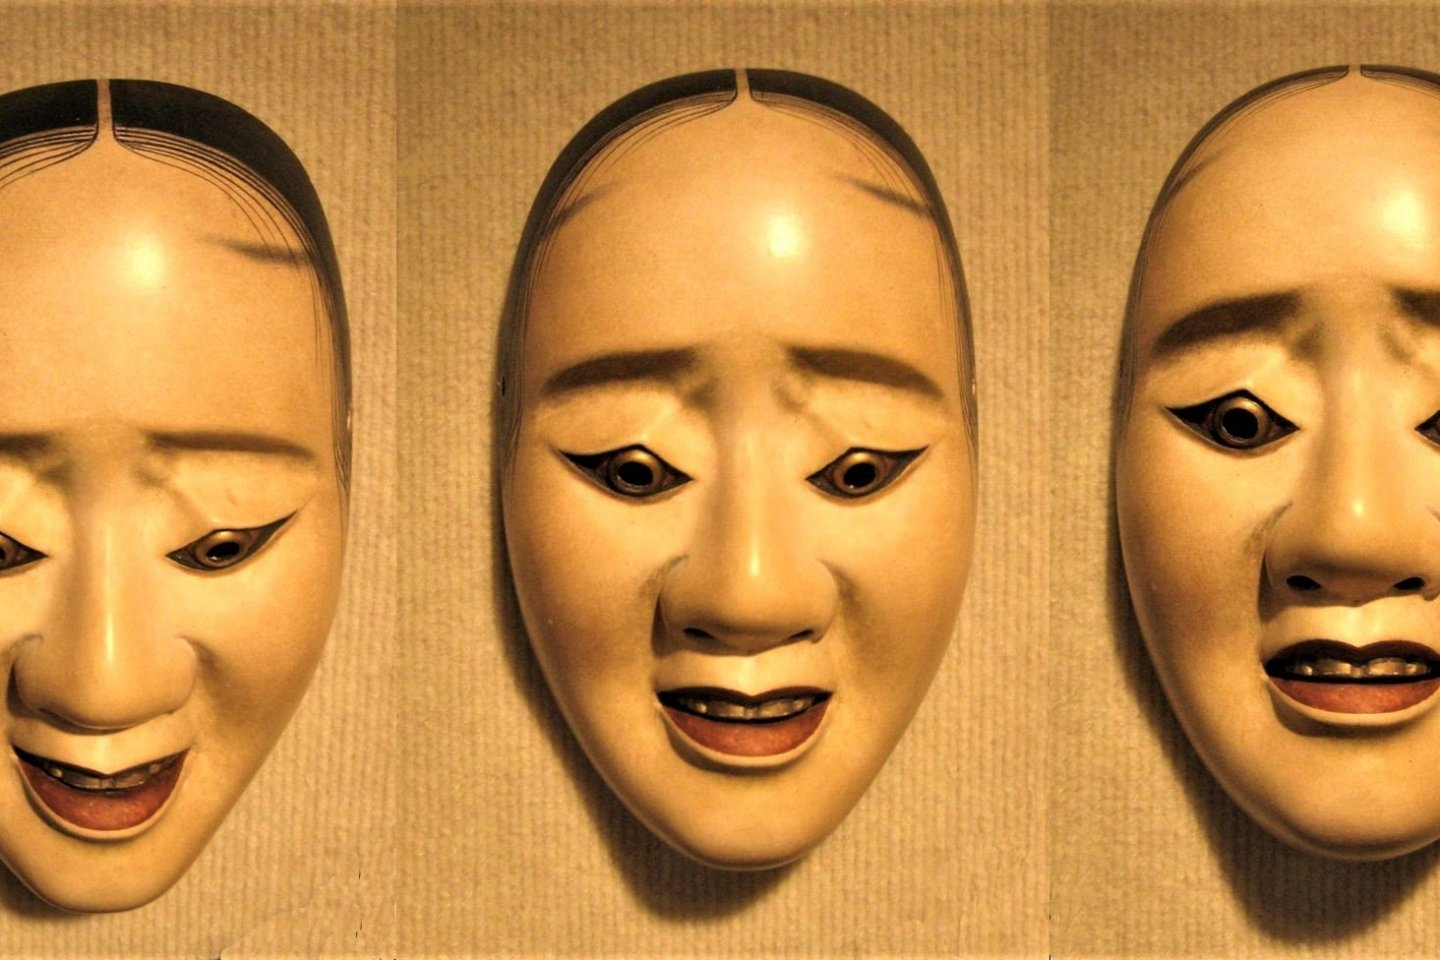 Different angles, different expressions, same mask